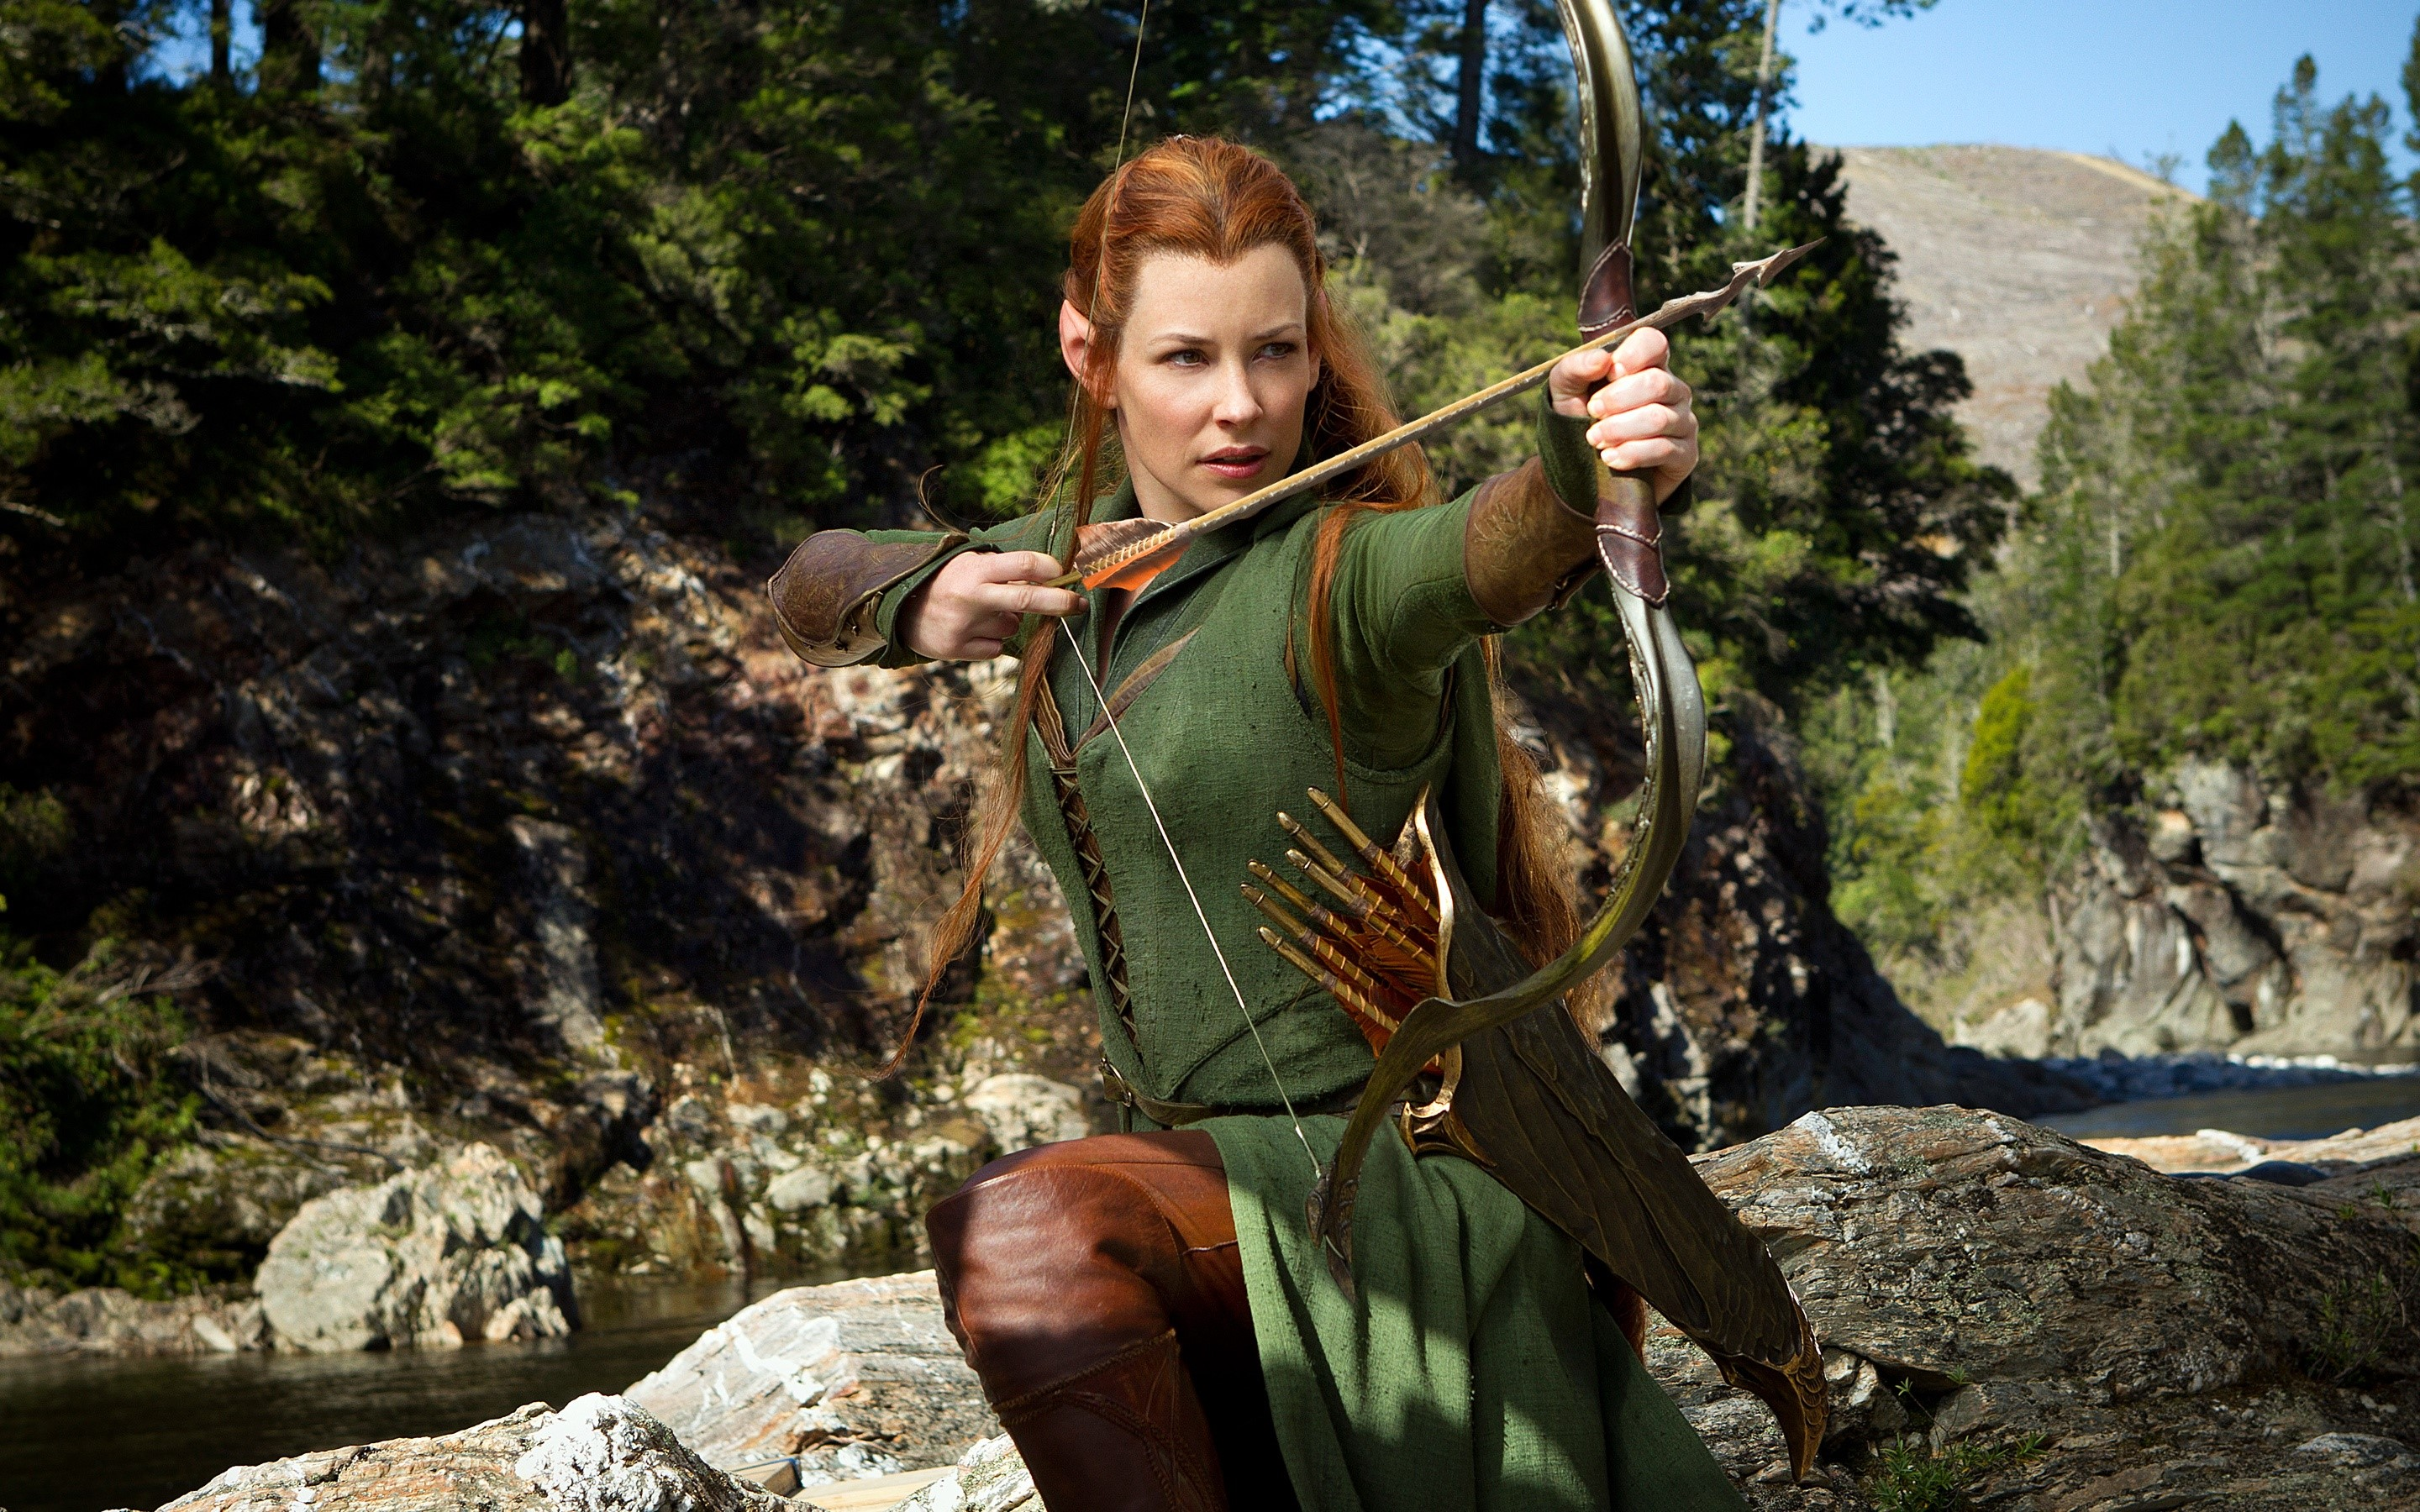 Wallpaper Evangeline Lilly as Tauriel